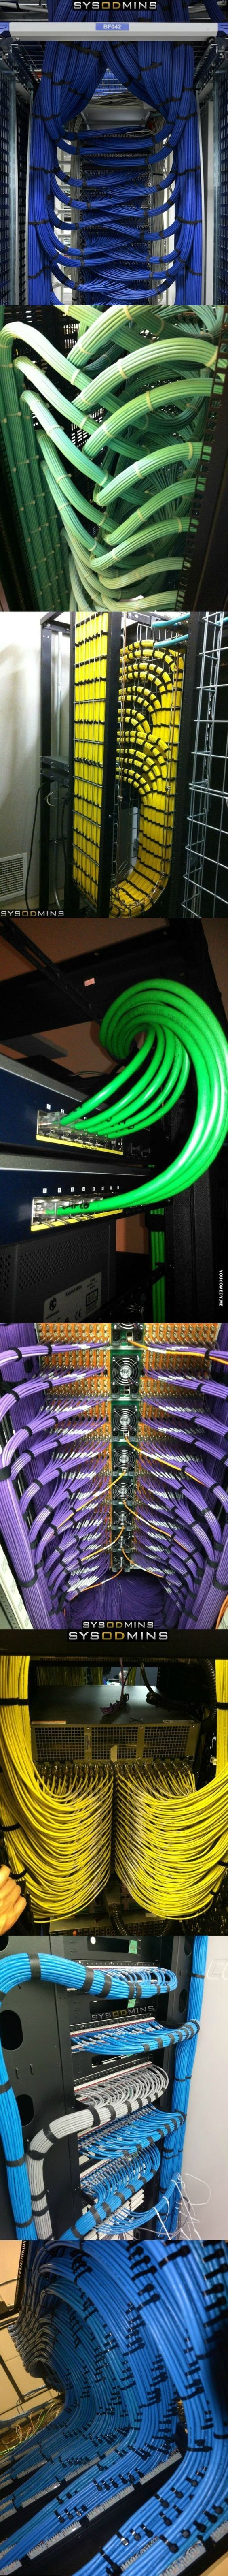 This company did a great job with all of these installs. Great cable management and network runs.: